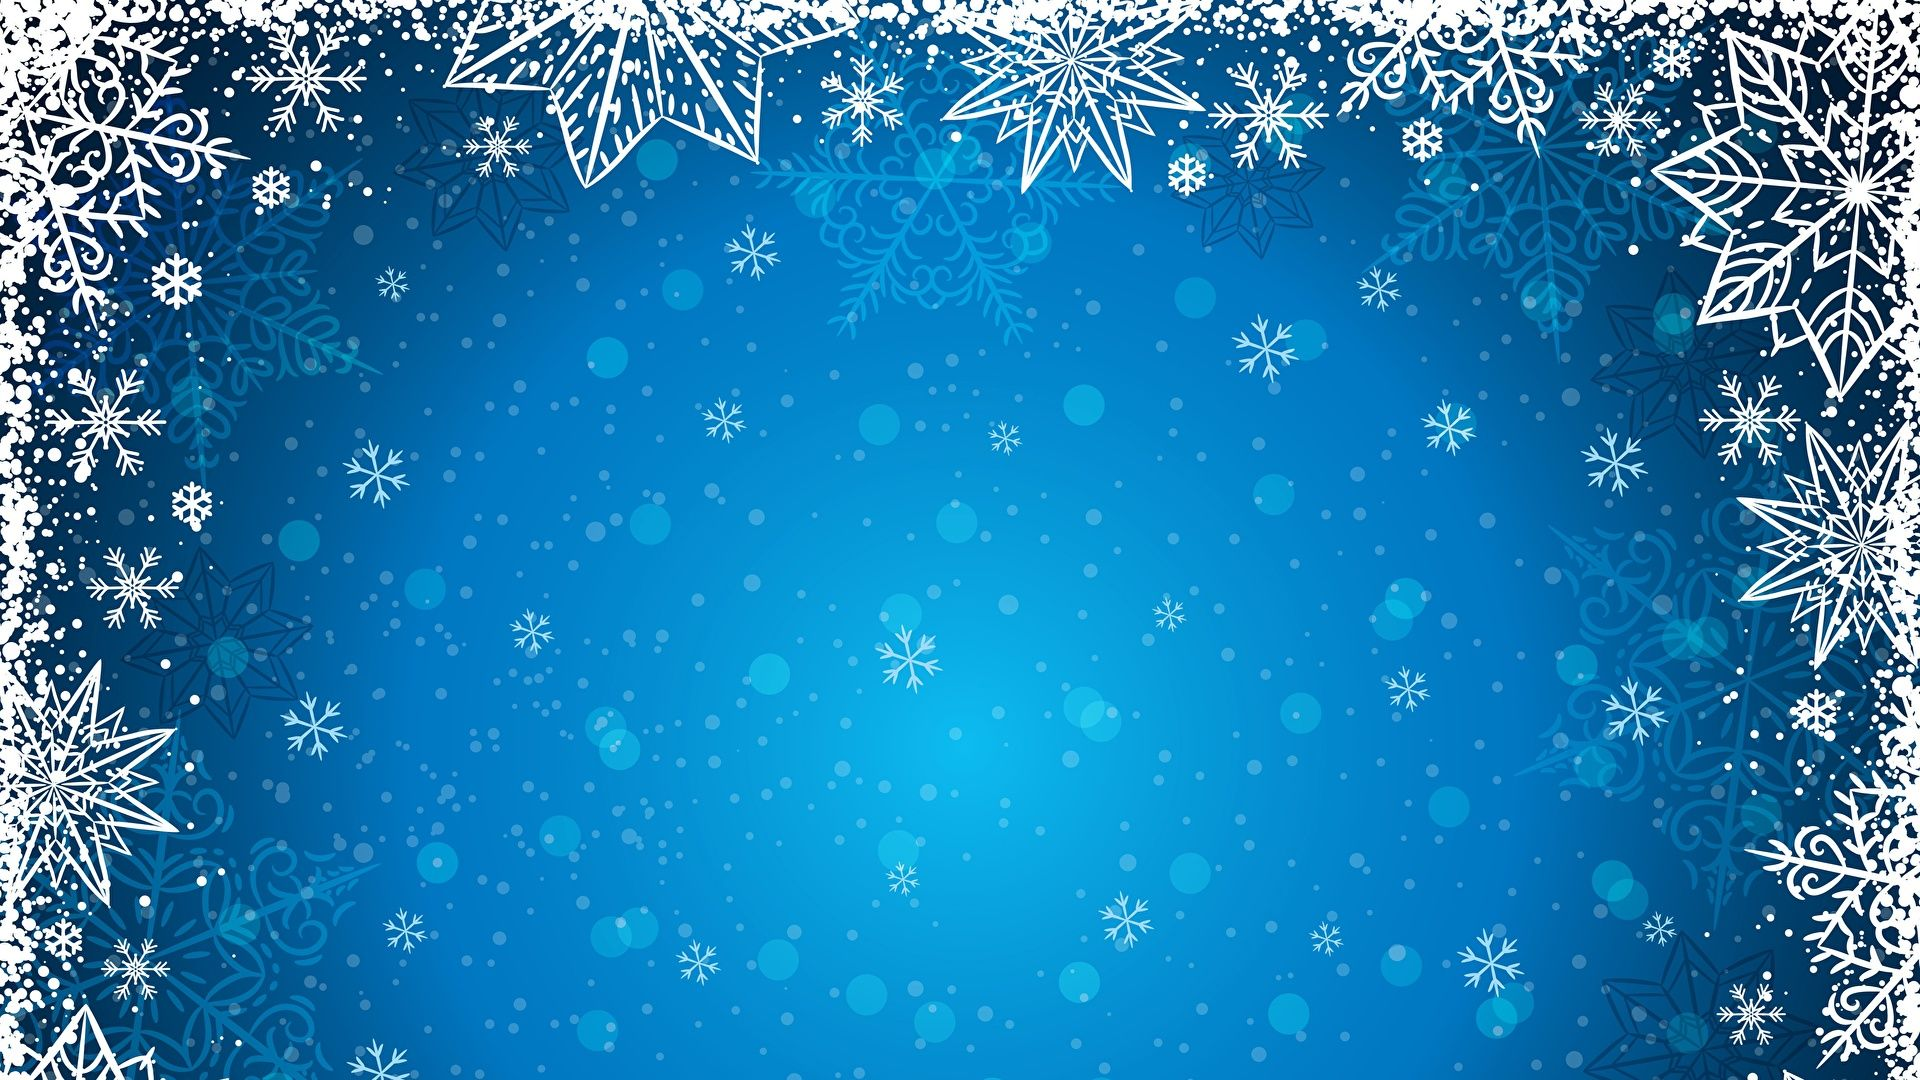 New Year With Snowflakes download nice wallpaper